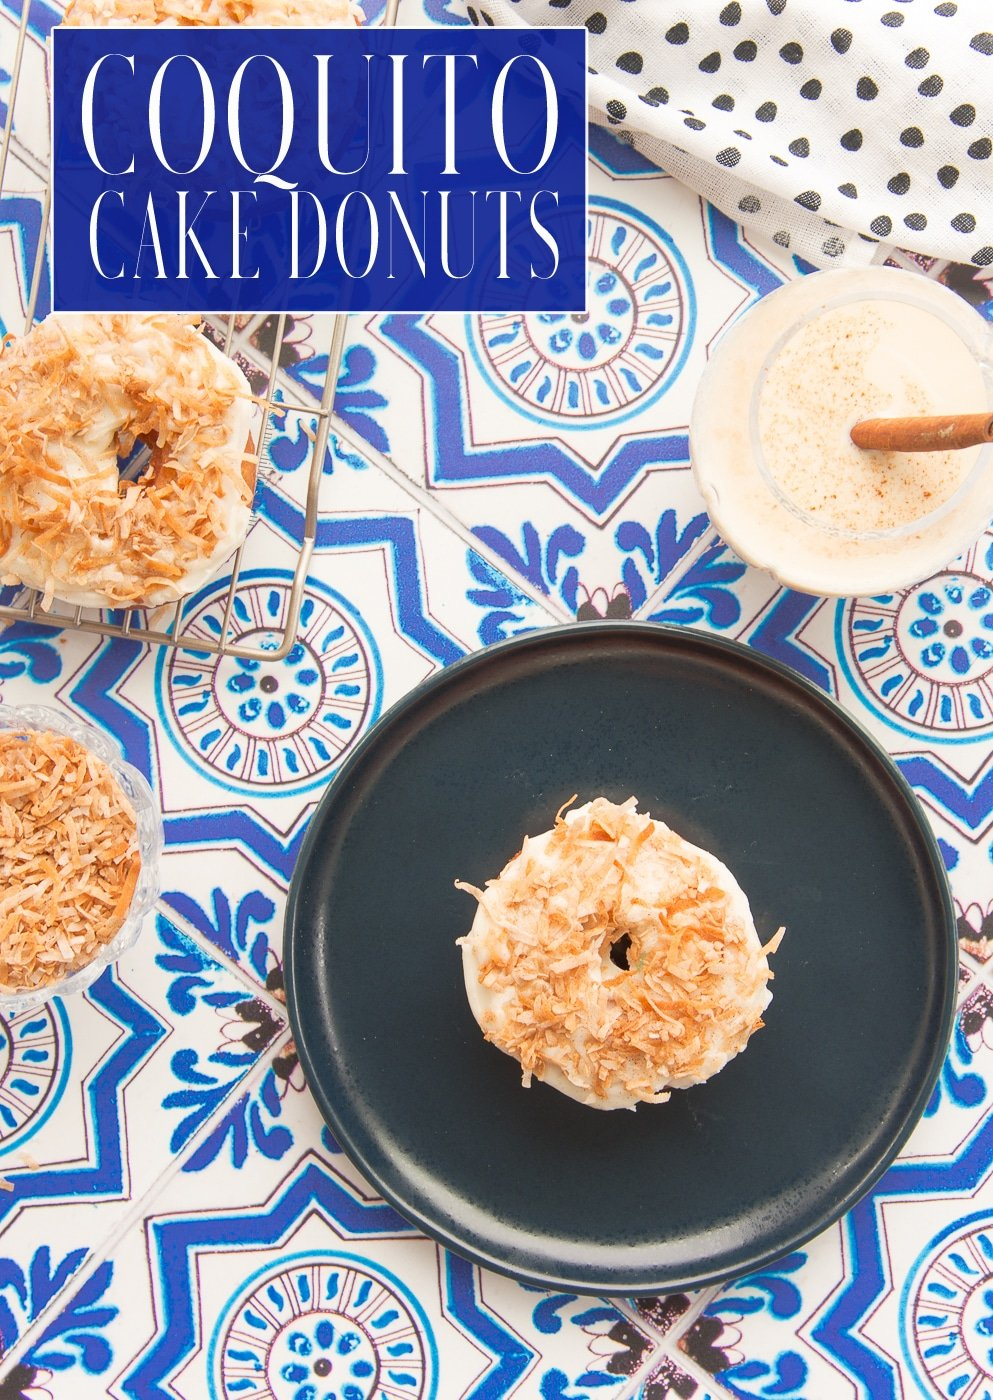 Coquito Cake Donuts take the popular Puerto Rican holiday cocktail and make it edible for breakfast, brunch, or dessert. Made with a creamy coconut-rum icing and topped with cinnamon-dusted coconut flakes, you'll be glad to enjoy this every day of the year. #coquito #coquitodonuts #recetasPuertorriqueñas #PuertoRicanrecipes #PuertoRicanCoquito #coconutrum #coconuteggnog #recetasnavideñas #holidayrecipes #cakedonuts #breakfastdonuts #donutrecipes via @ediblesense